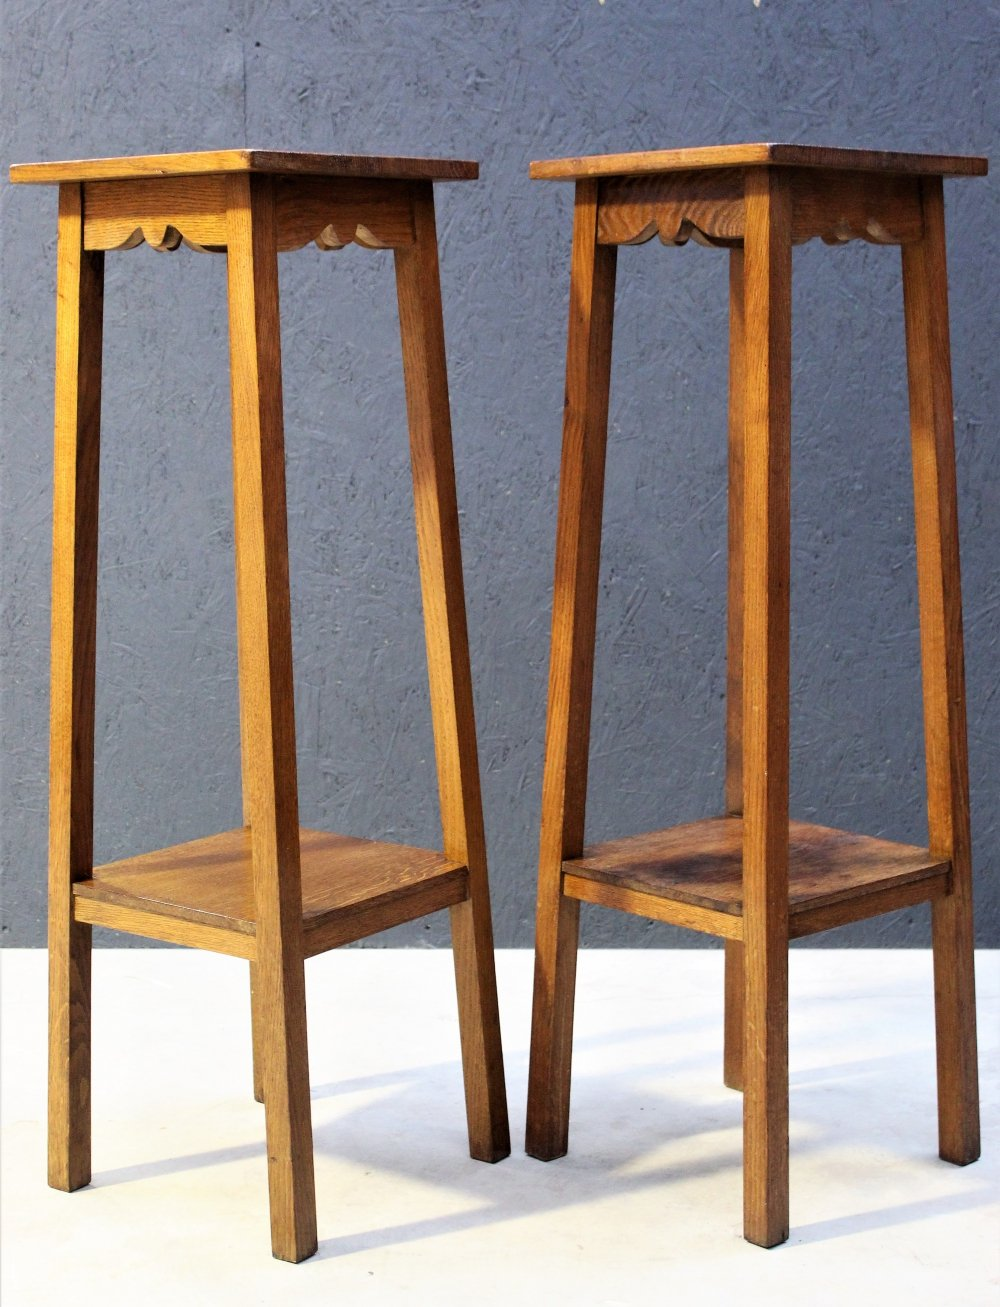 Pair of Vintage plant stands in oak, 1950s